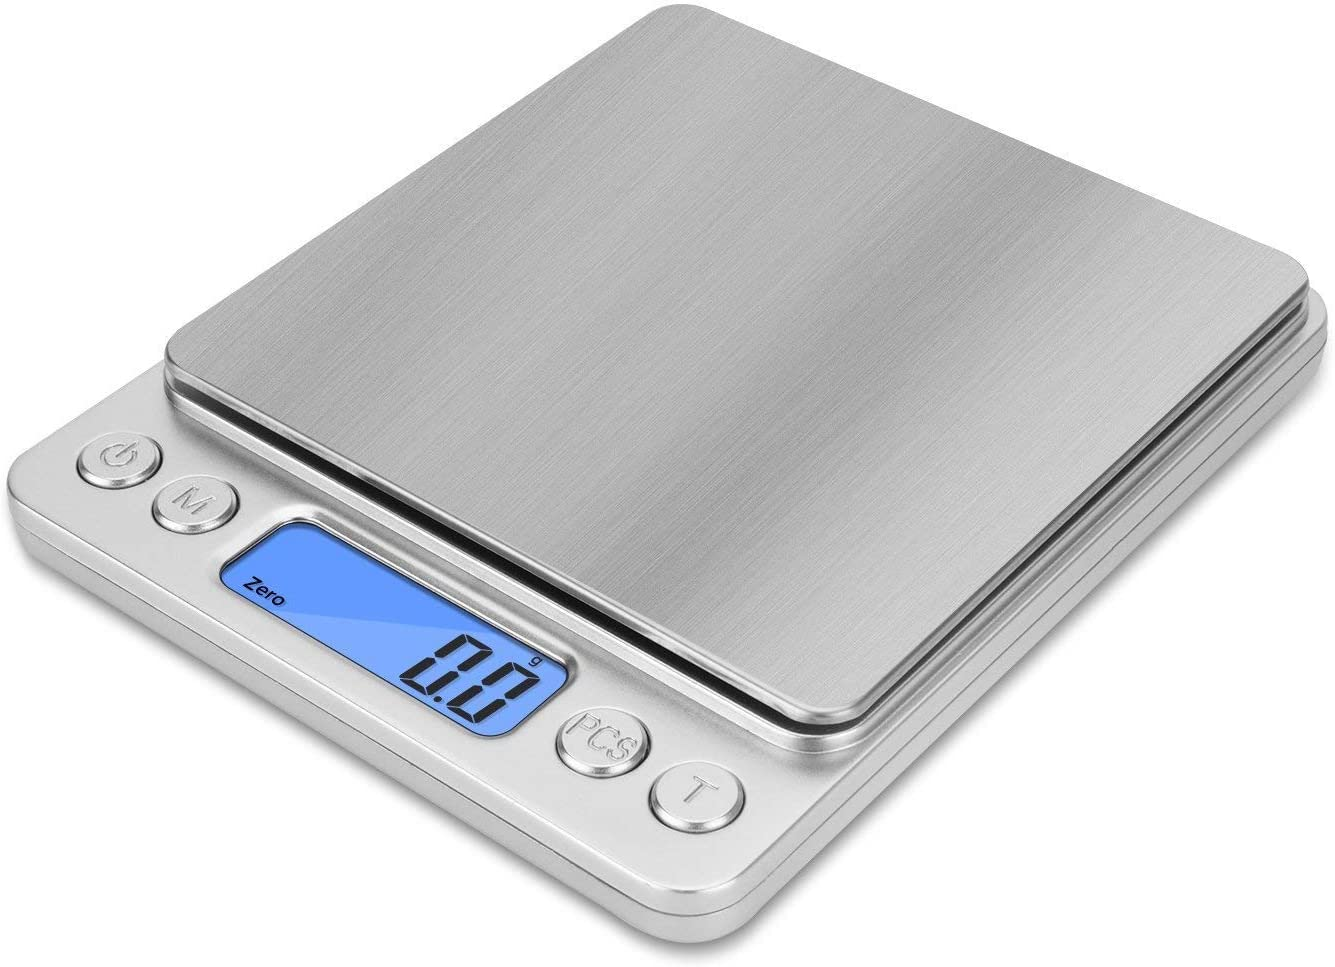 NEXT-SHINE Gram Scale Digital Kitchen Scale Mini Pocket Pro Size 2000g x 0.1g with LCD Display Stainless Steel Platform for Cooking Baking Jewelry Weight Postal Parcel